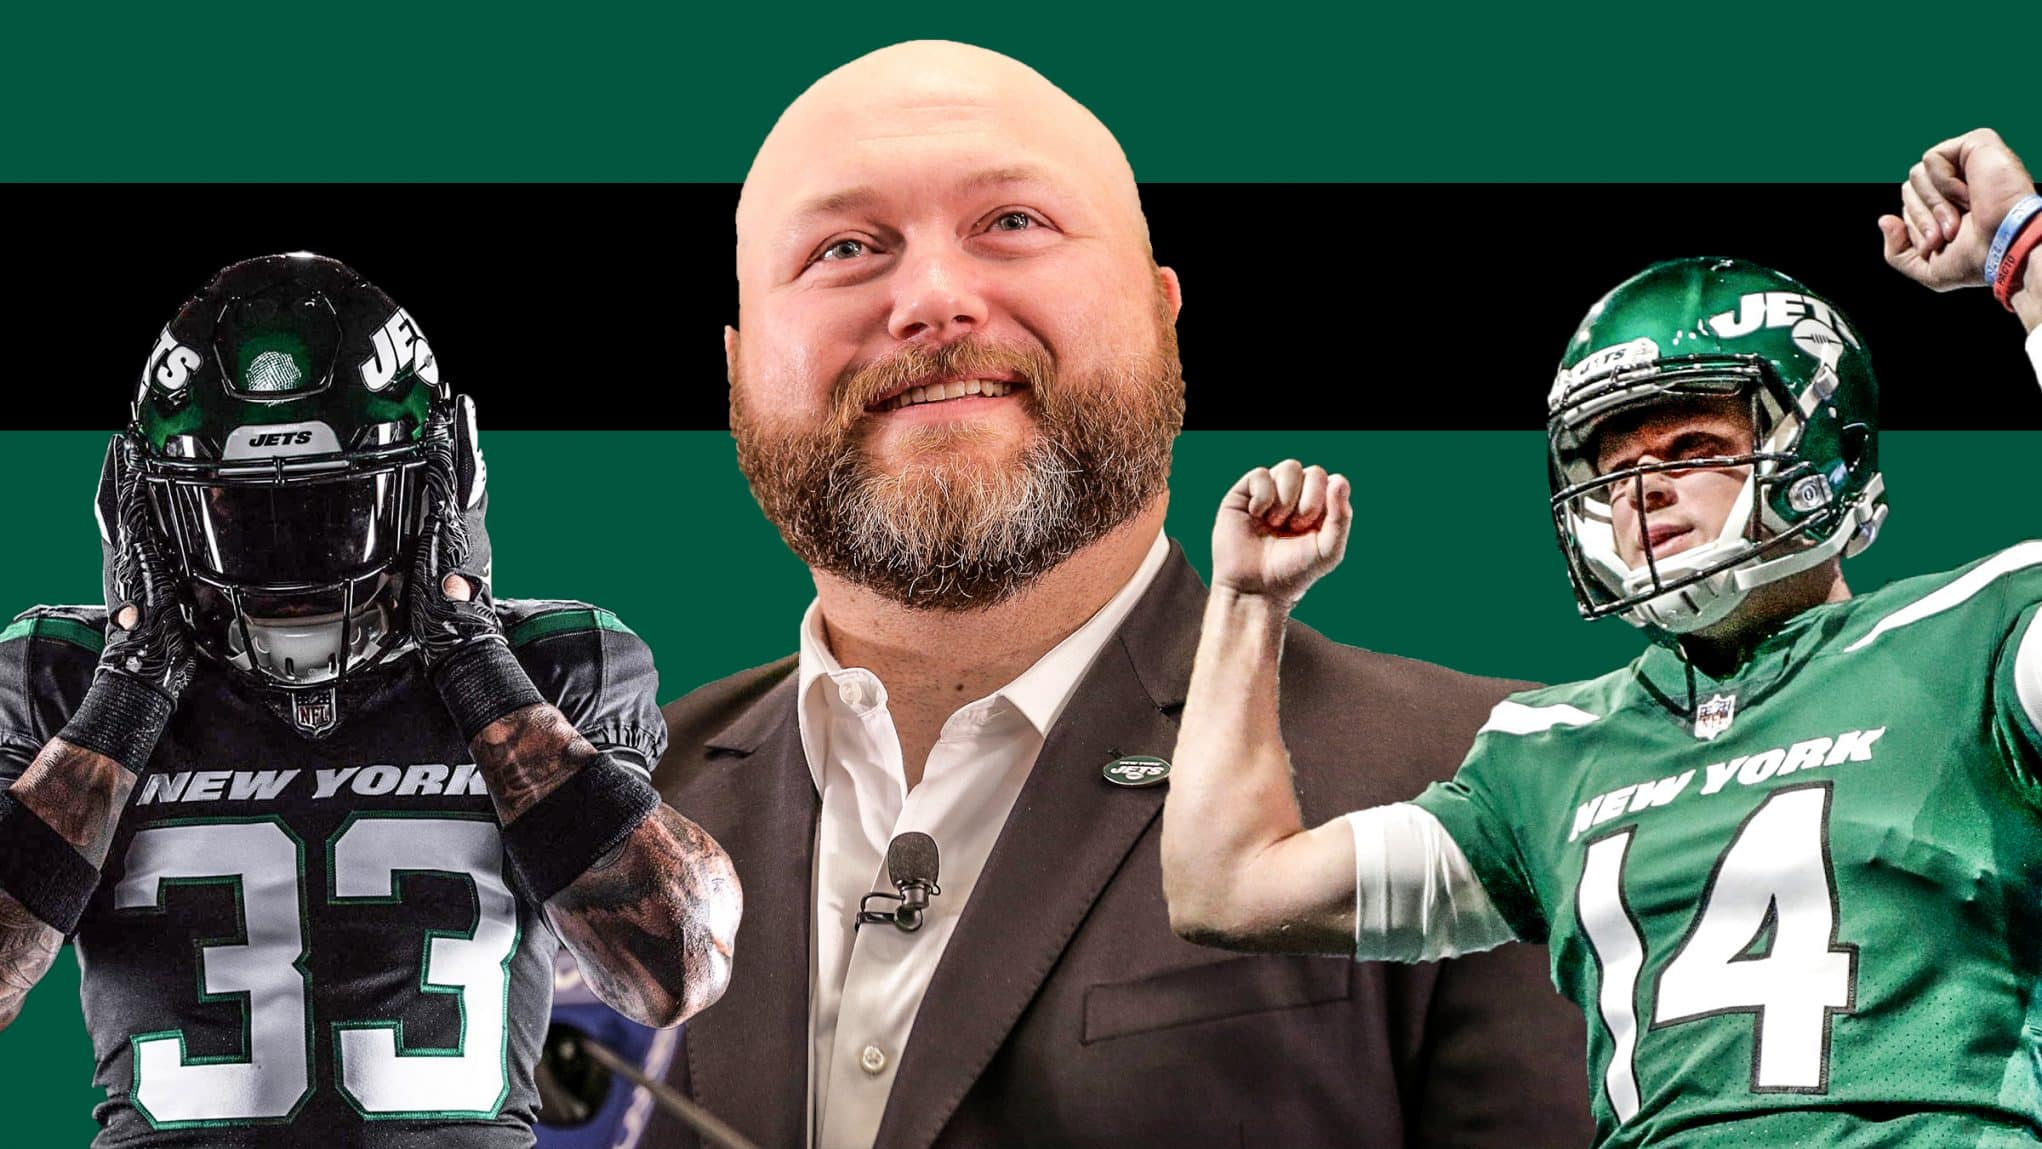 New York Jets 2020 Meet the 2020 New York Jets: The Super Bowl champions